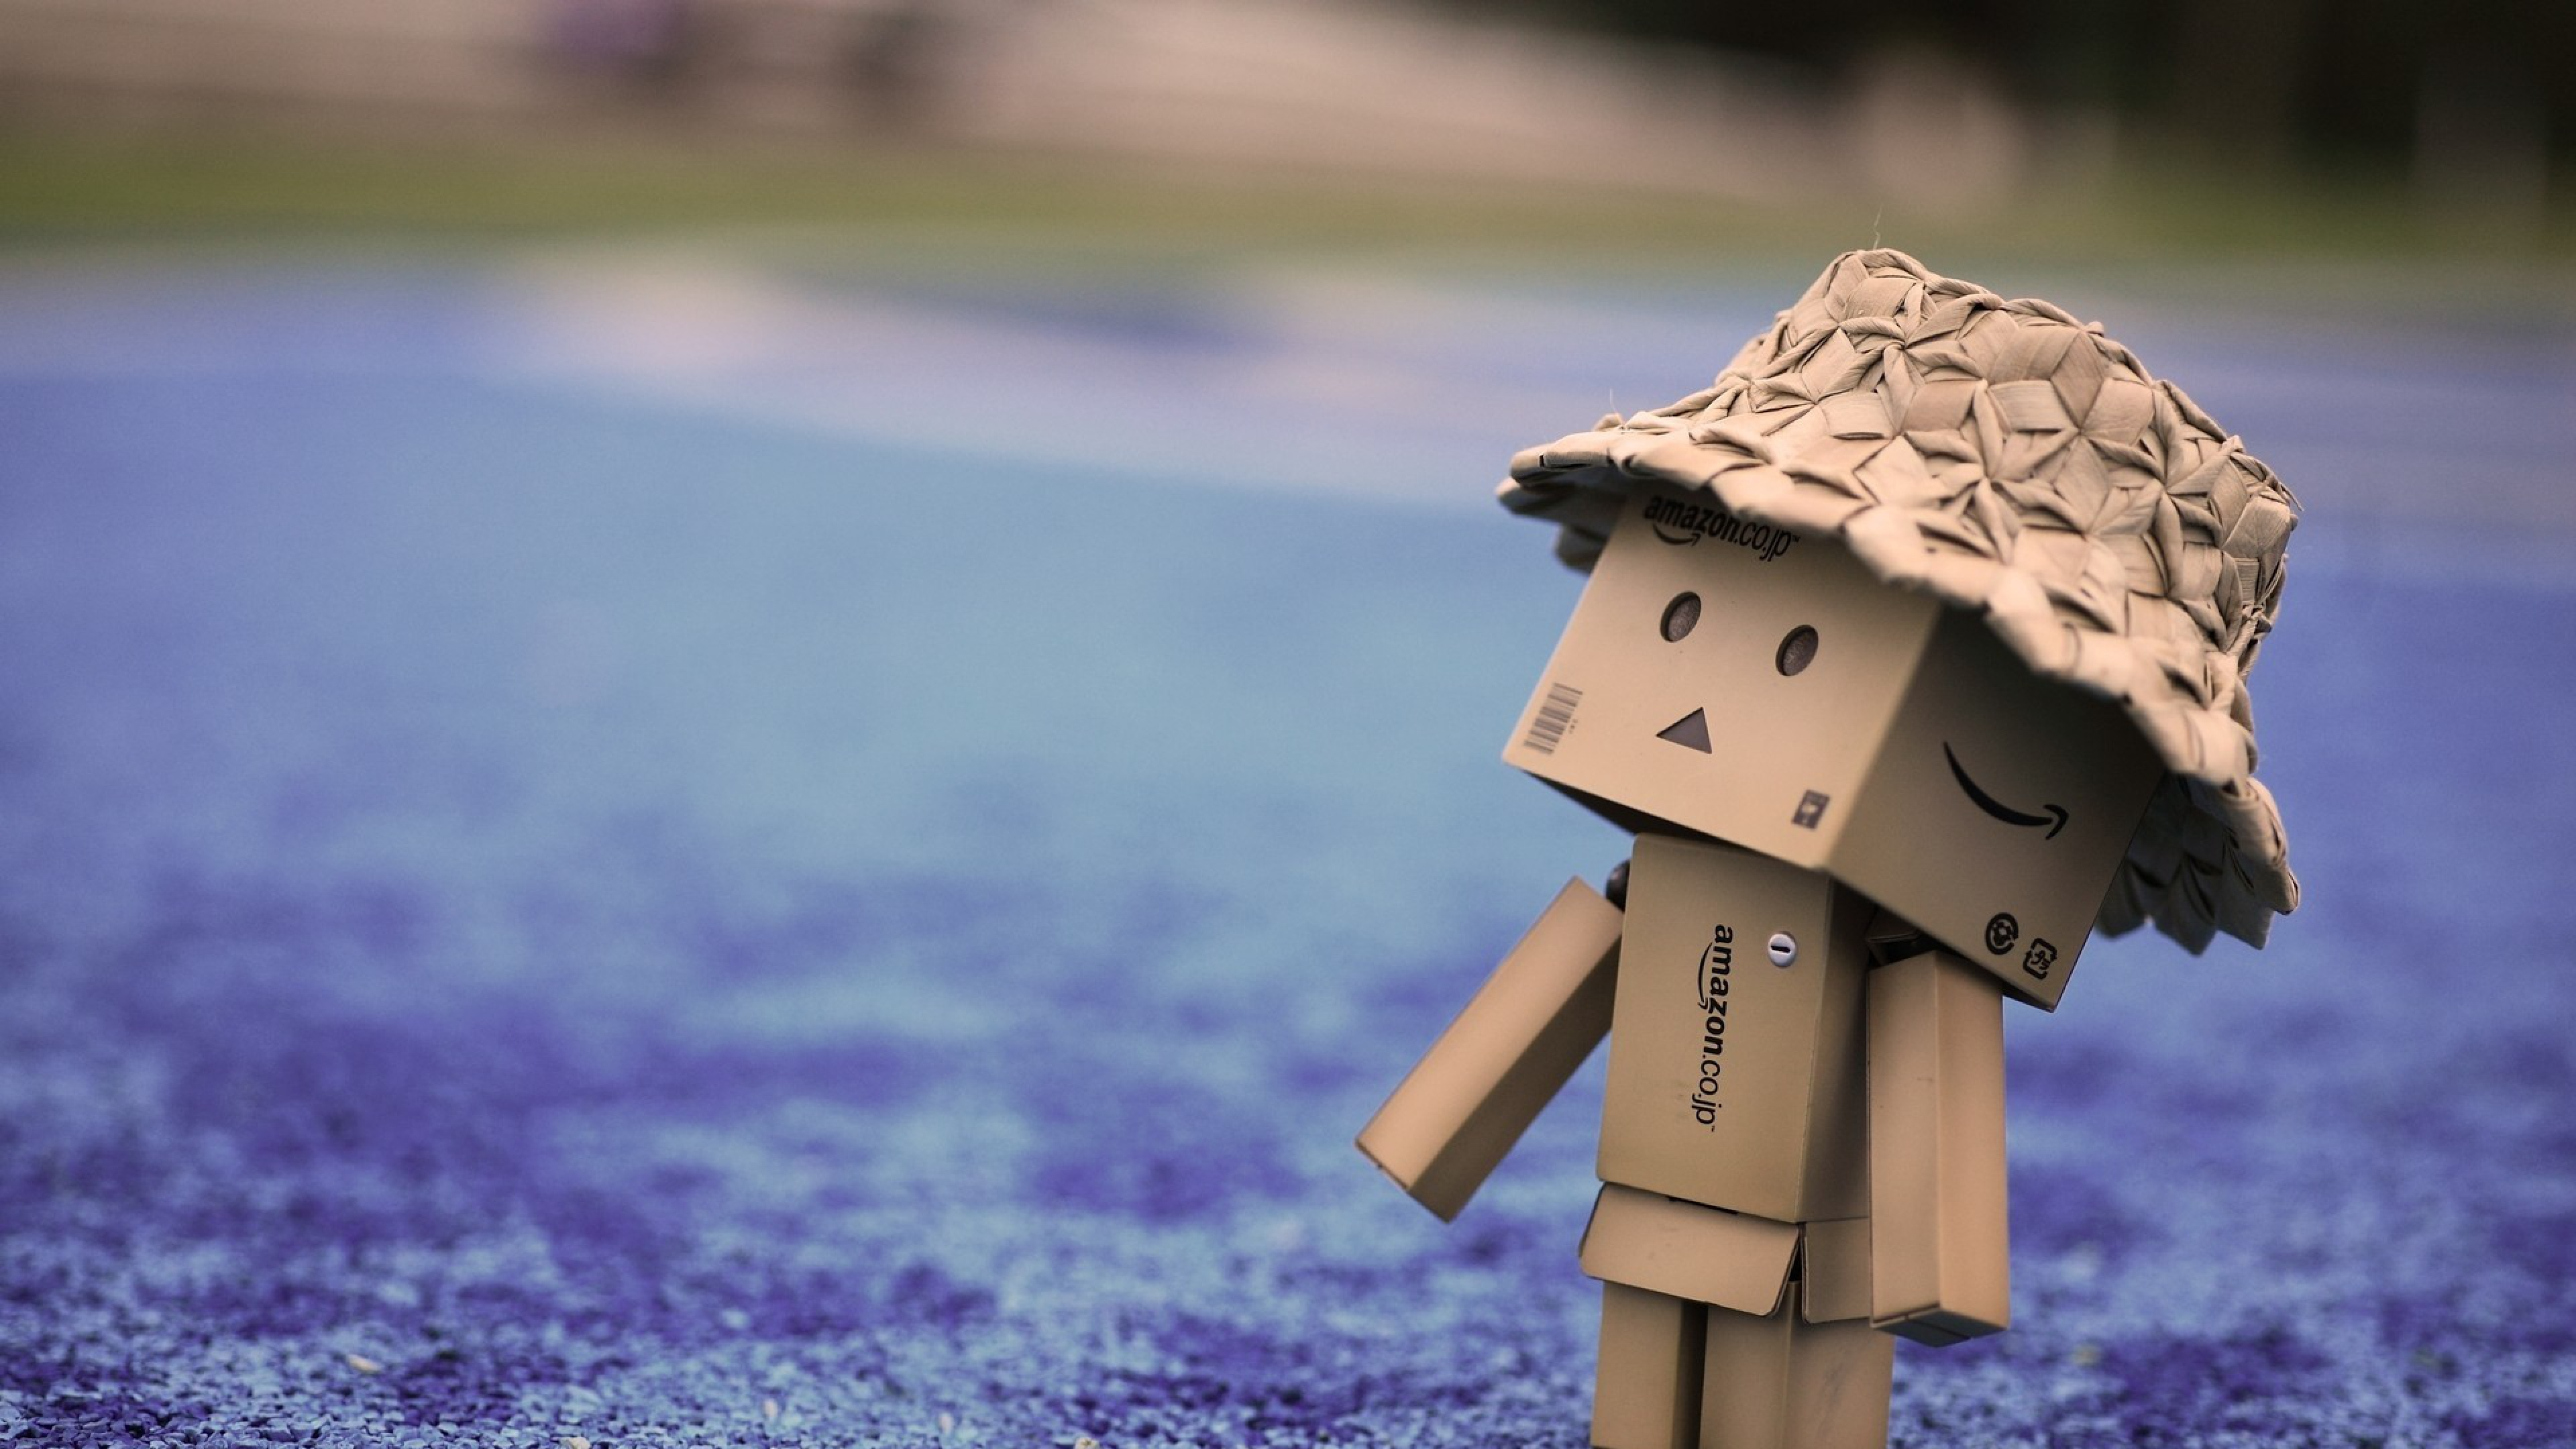 danboard wallpapers 28 hd - photo #13